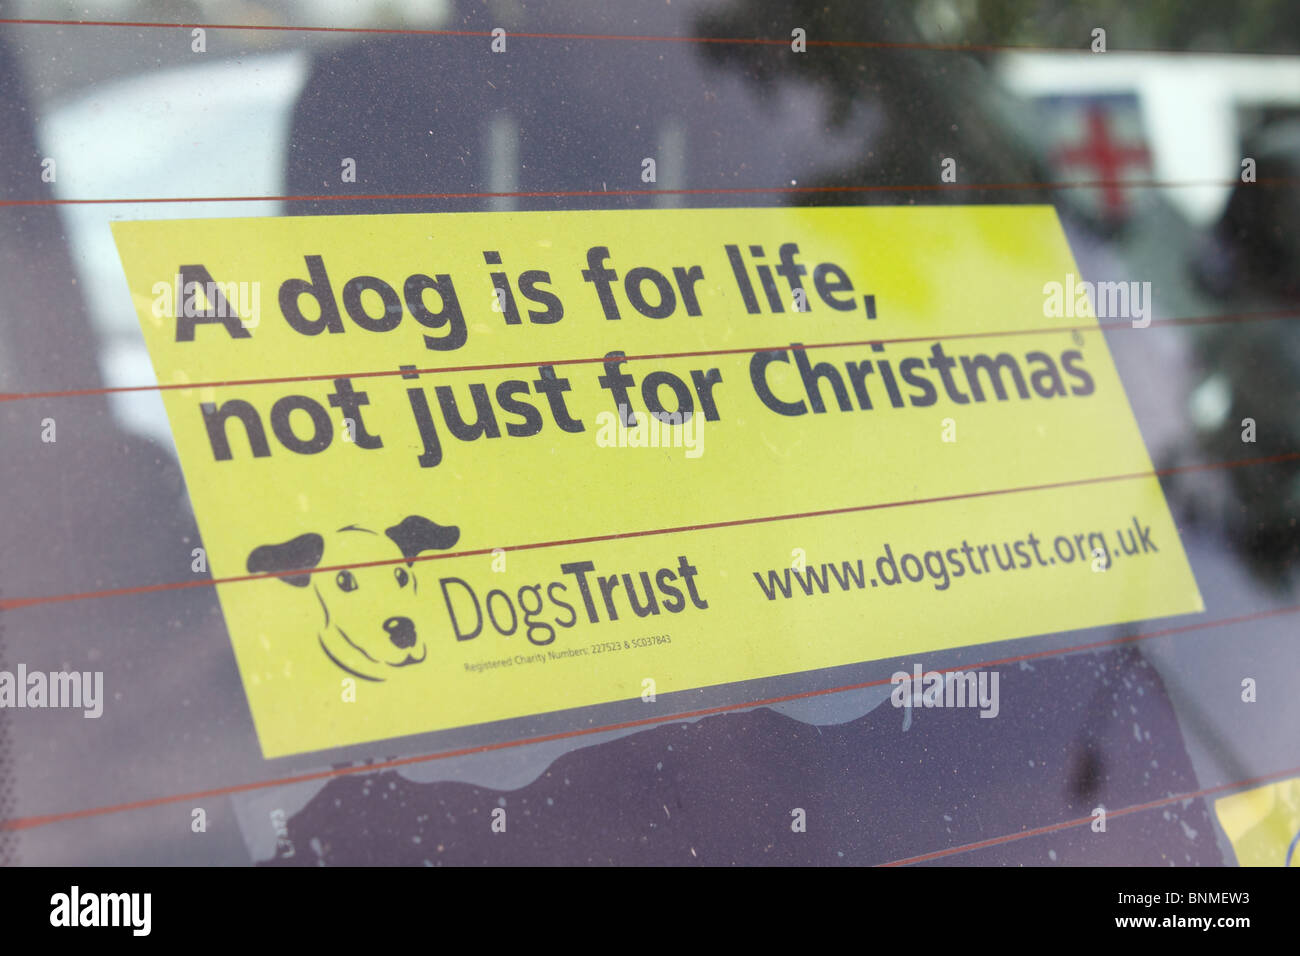 'A dog is for life not, just for Christmas' sticker in car window - Stock Image